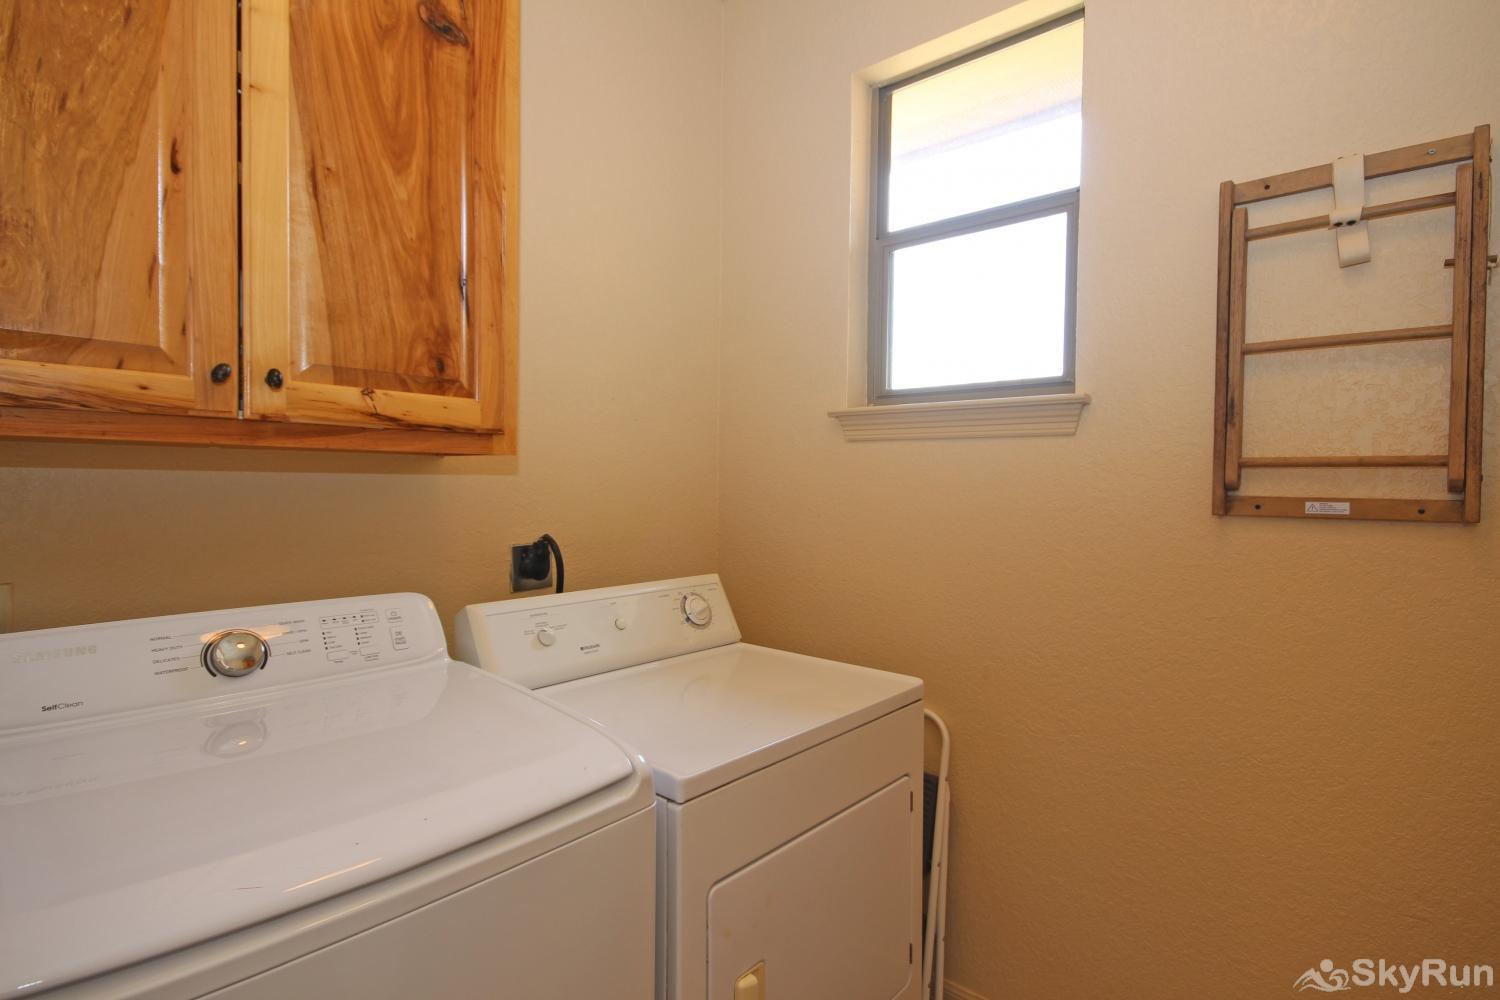 BELLA'S COVE Washer and dryer available for guest use